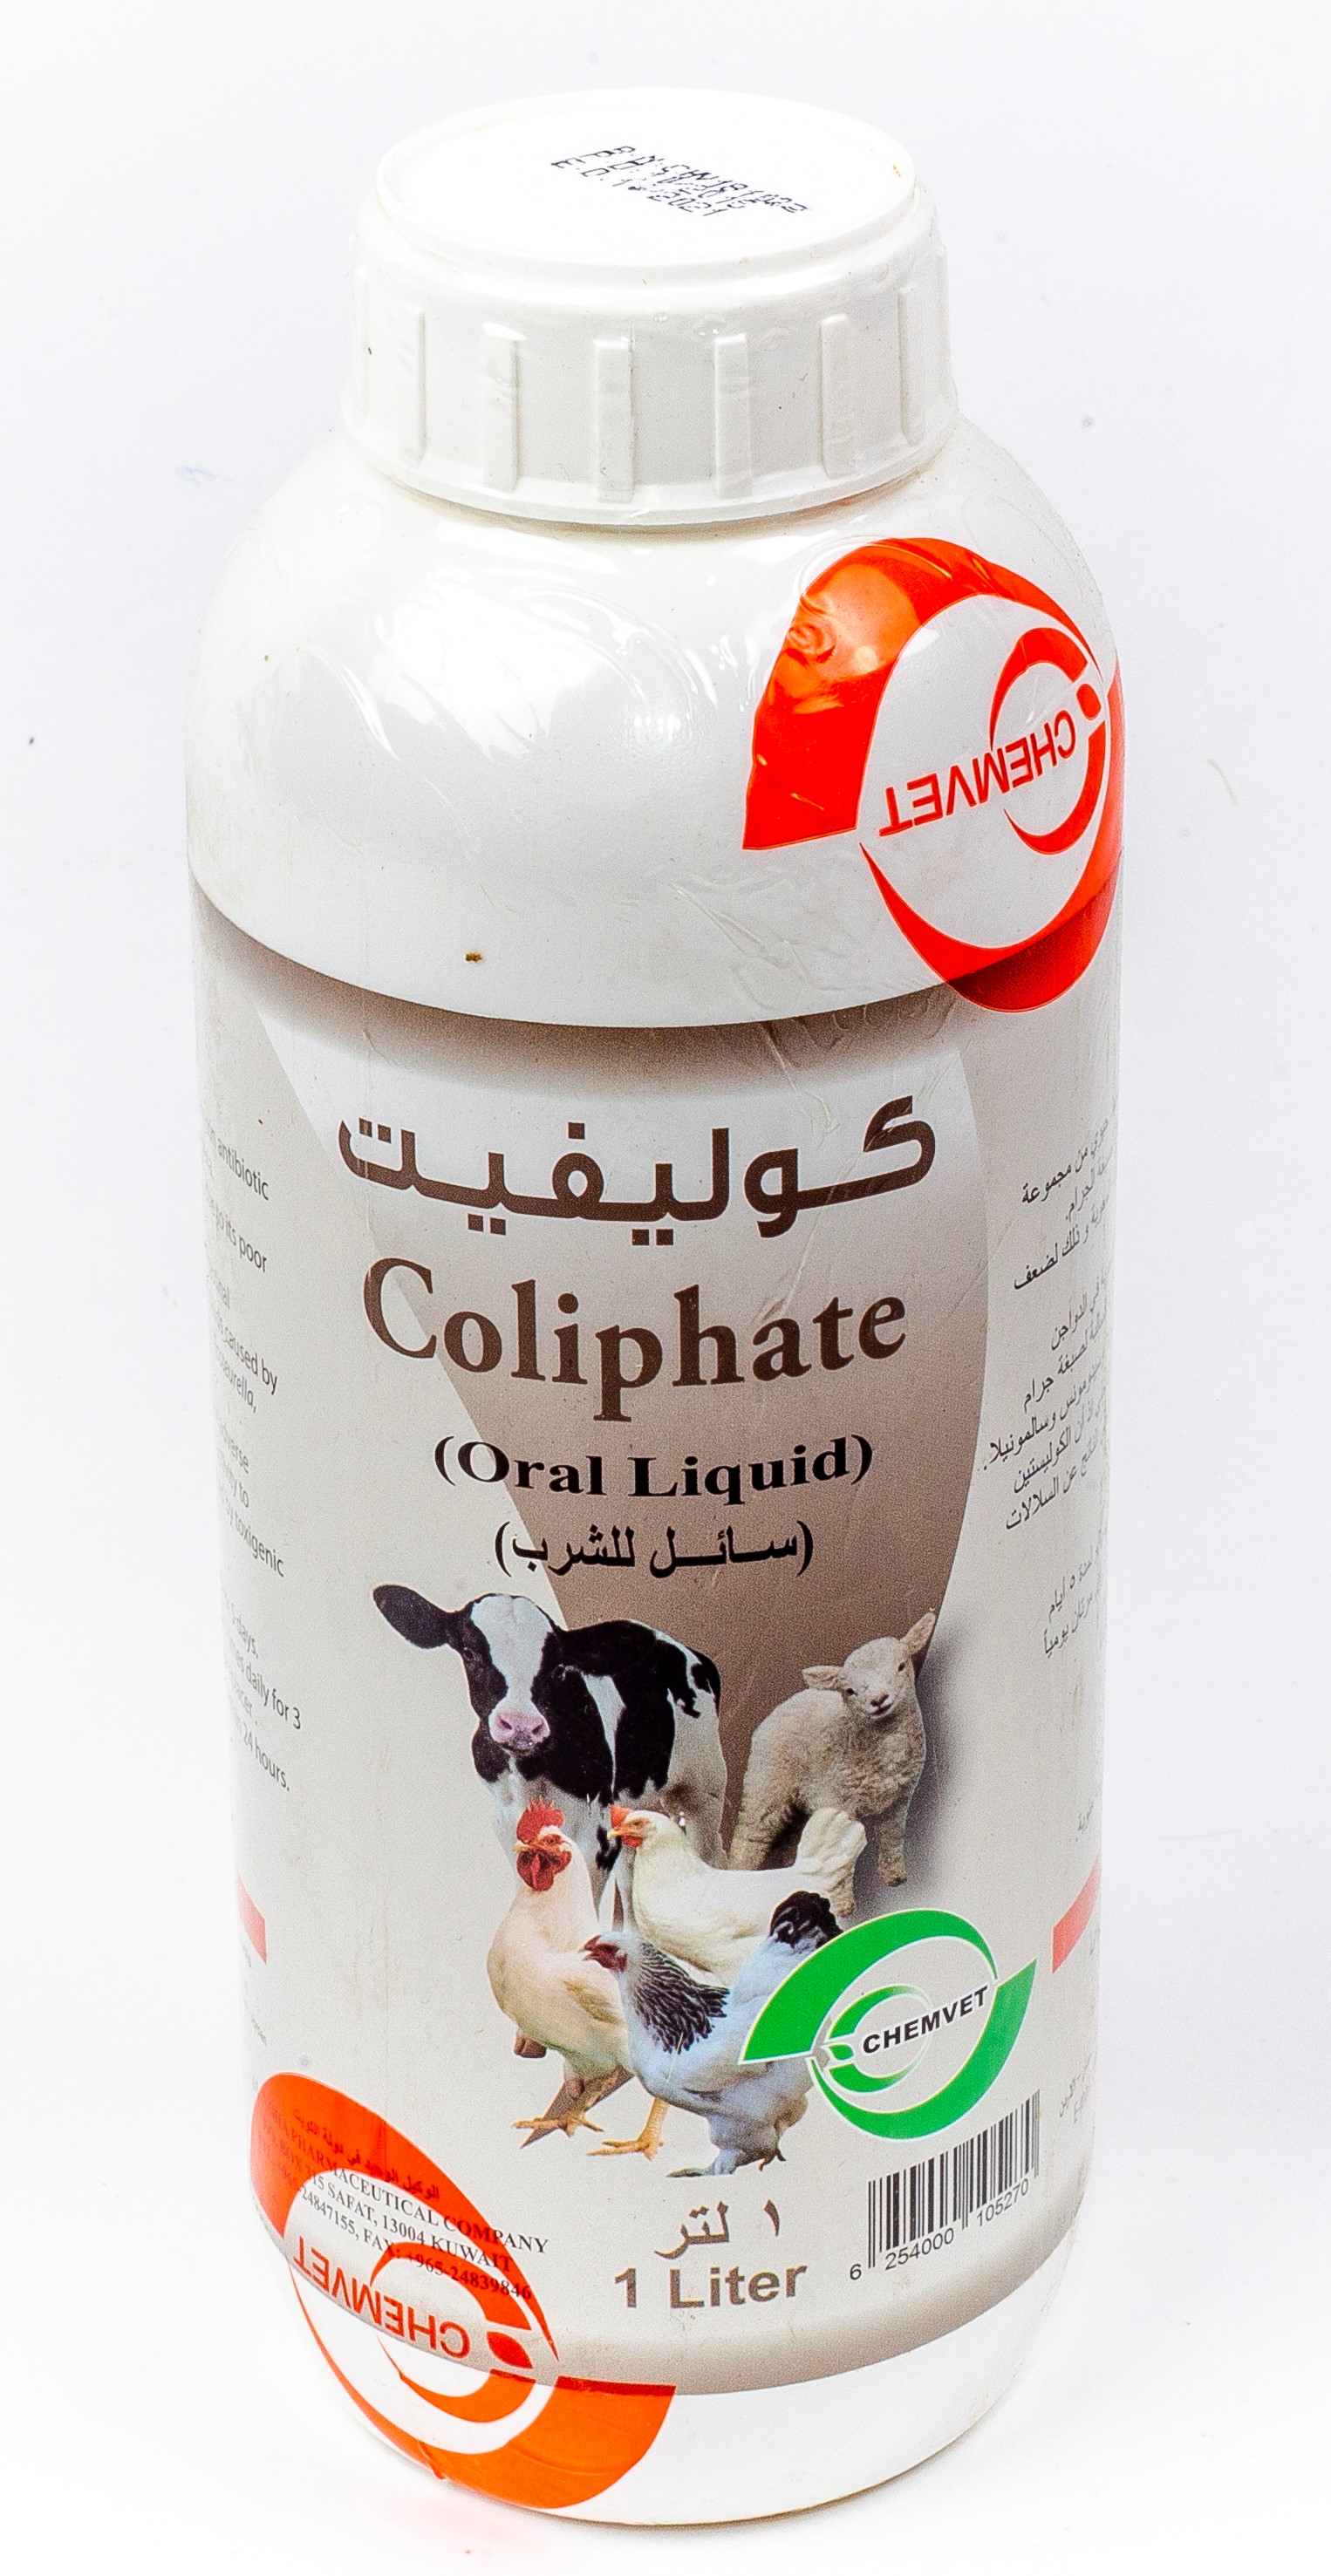 Coliphate WSP